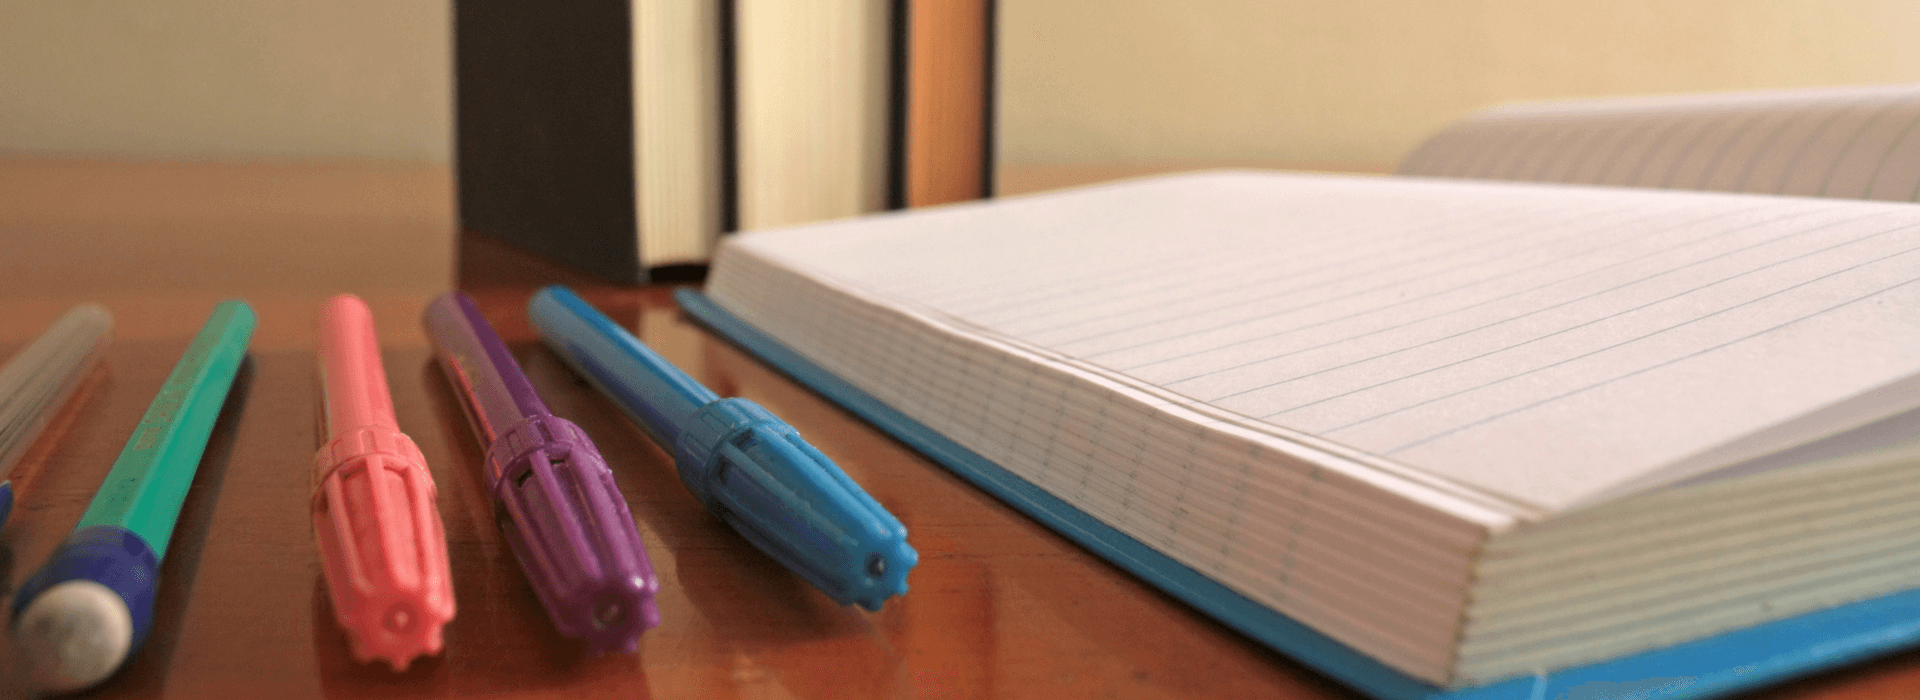 pens-and-notebook.png